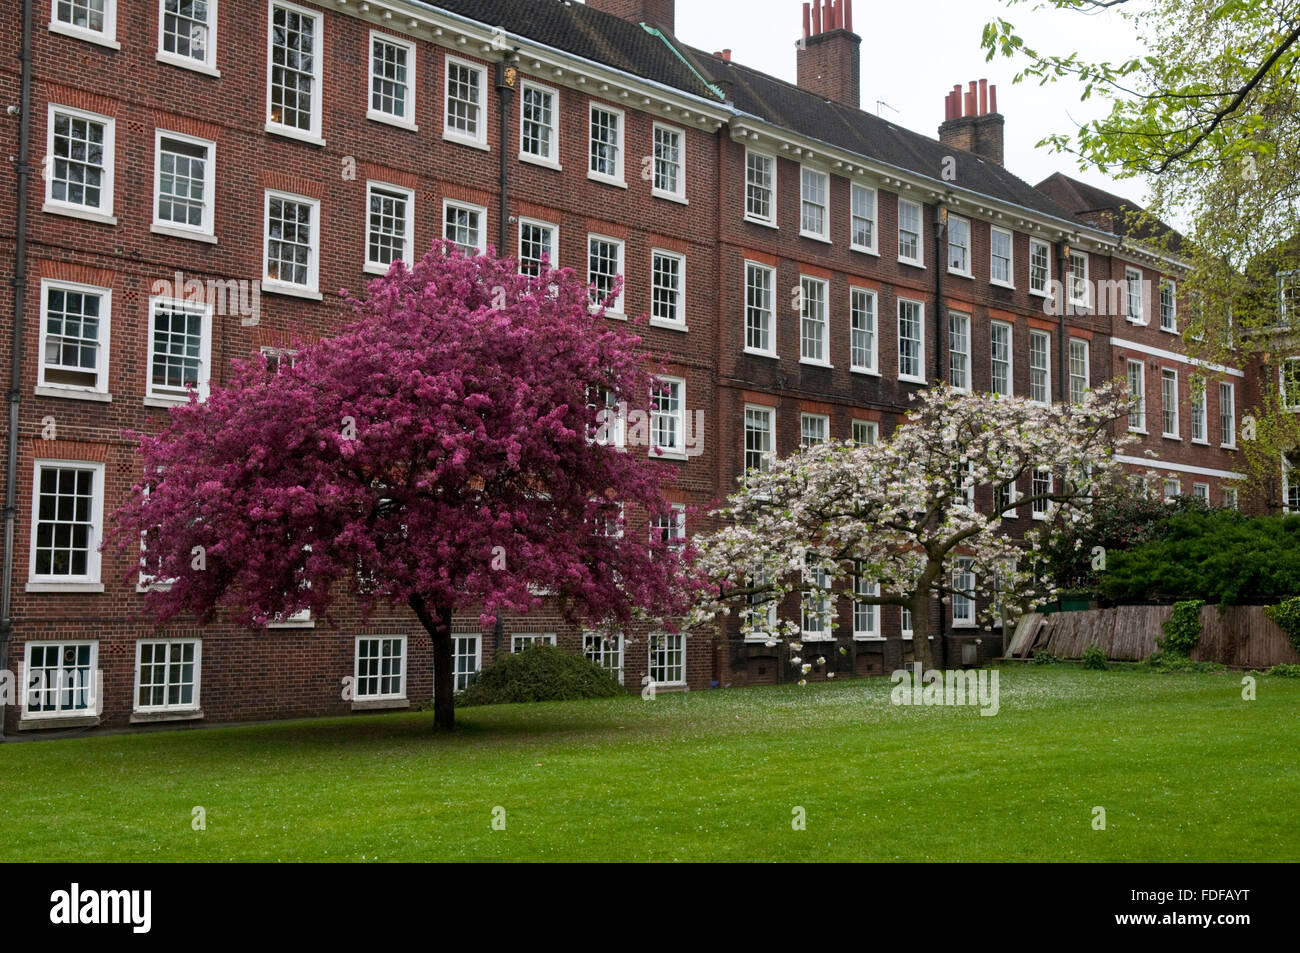 Trees in blossom and buildings at Gray's Inn, London, one of the four Inns of  Court of the British legal system - Stock Image